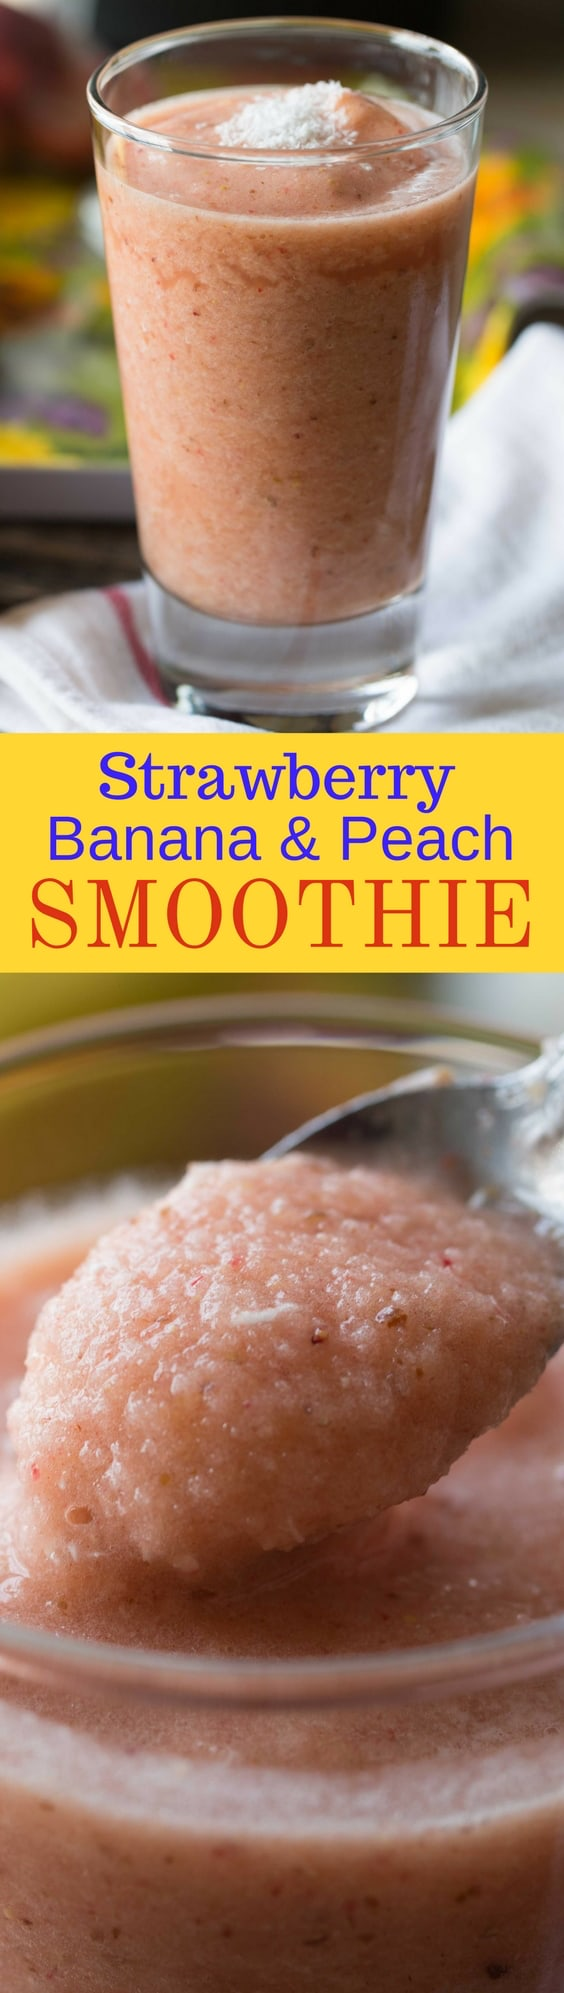 I had a long listing of recipes to brand this weekend but Strawberry, Banana  Peach Smoothie